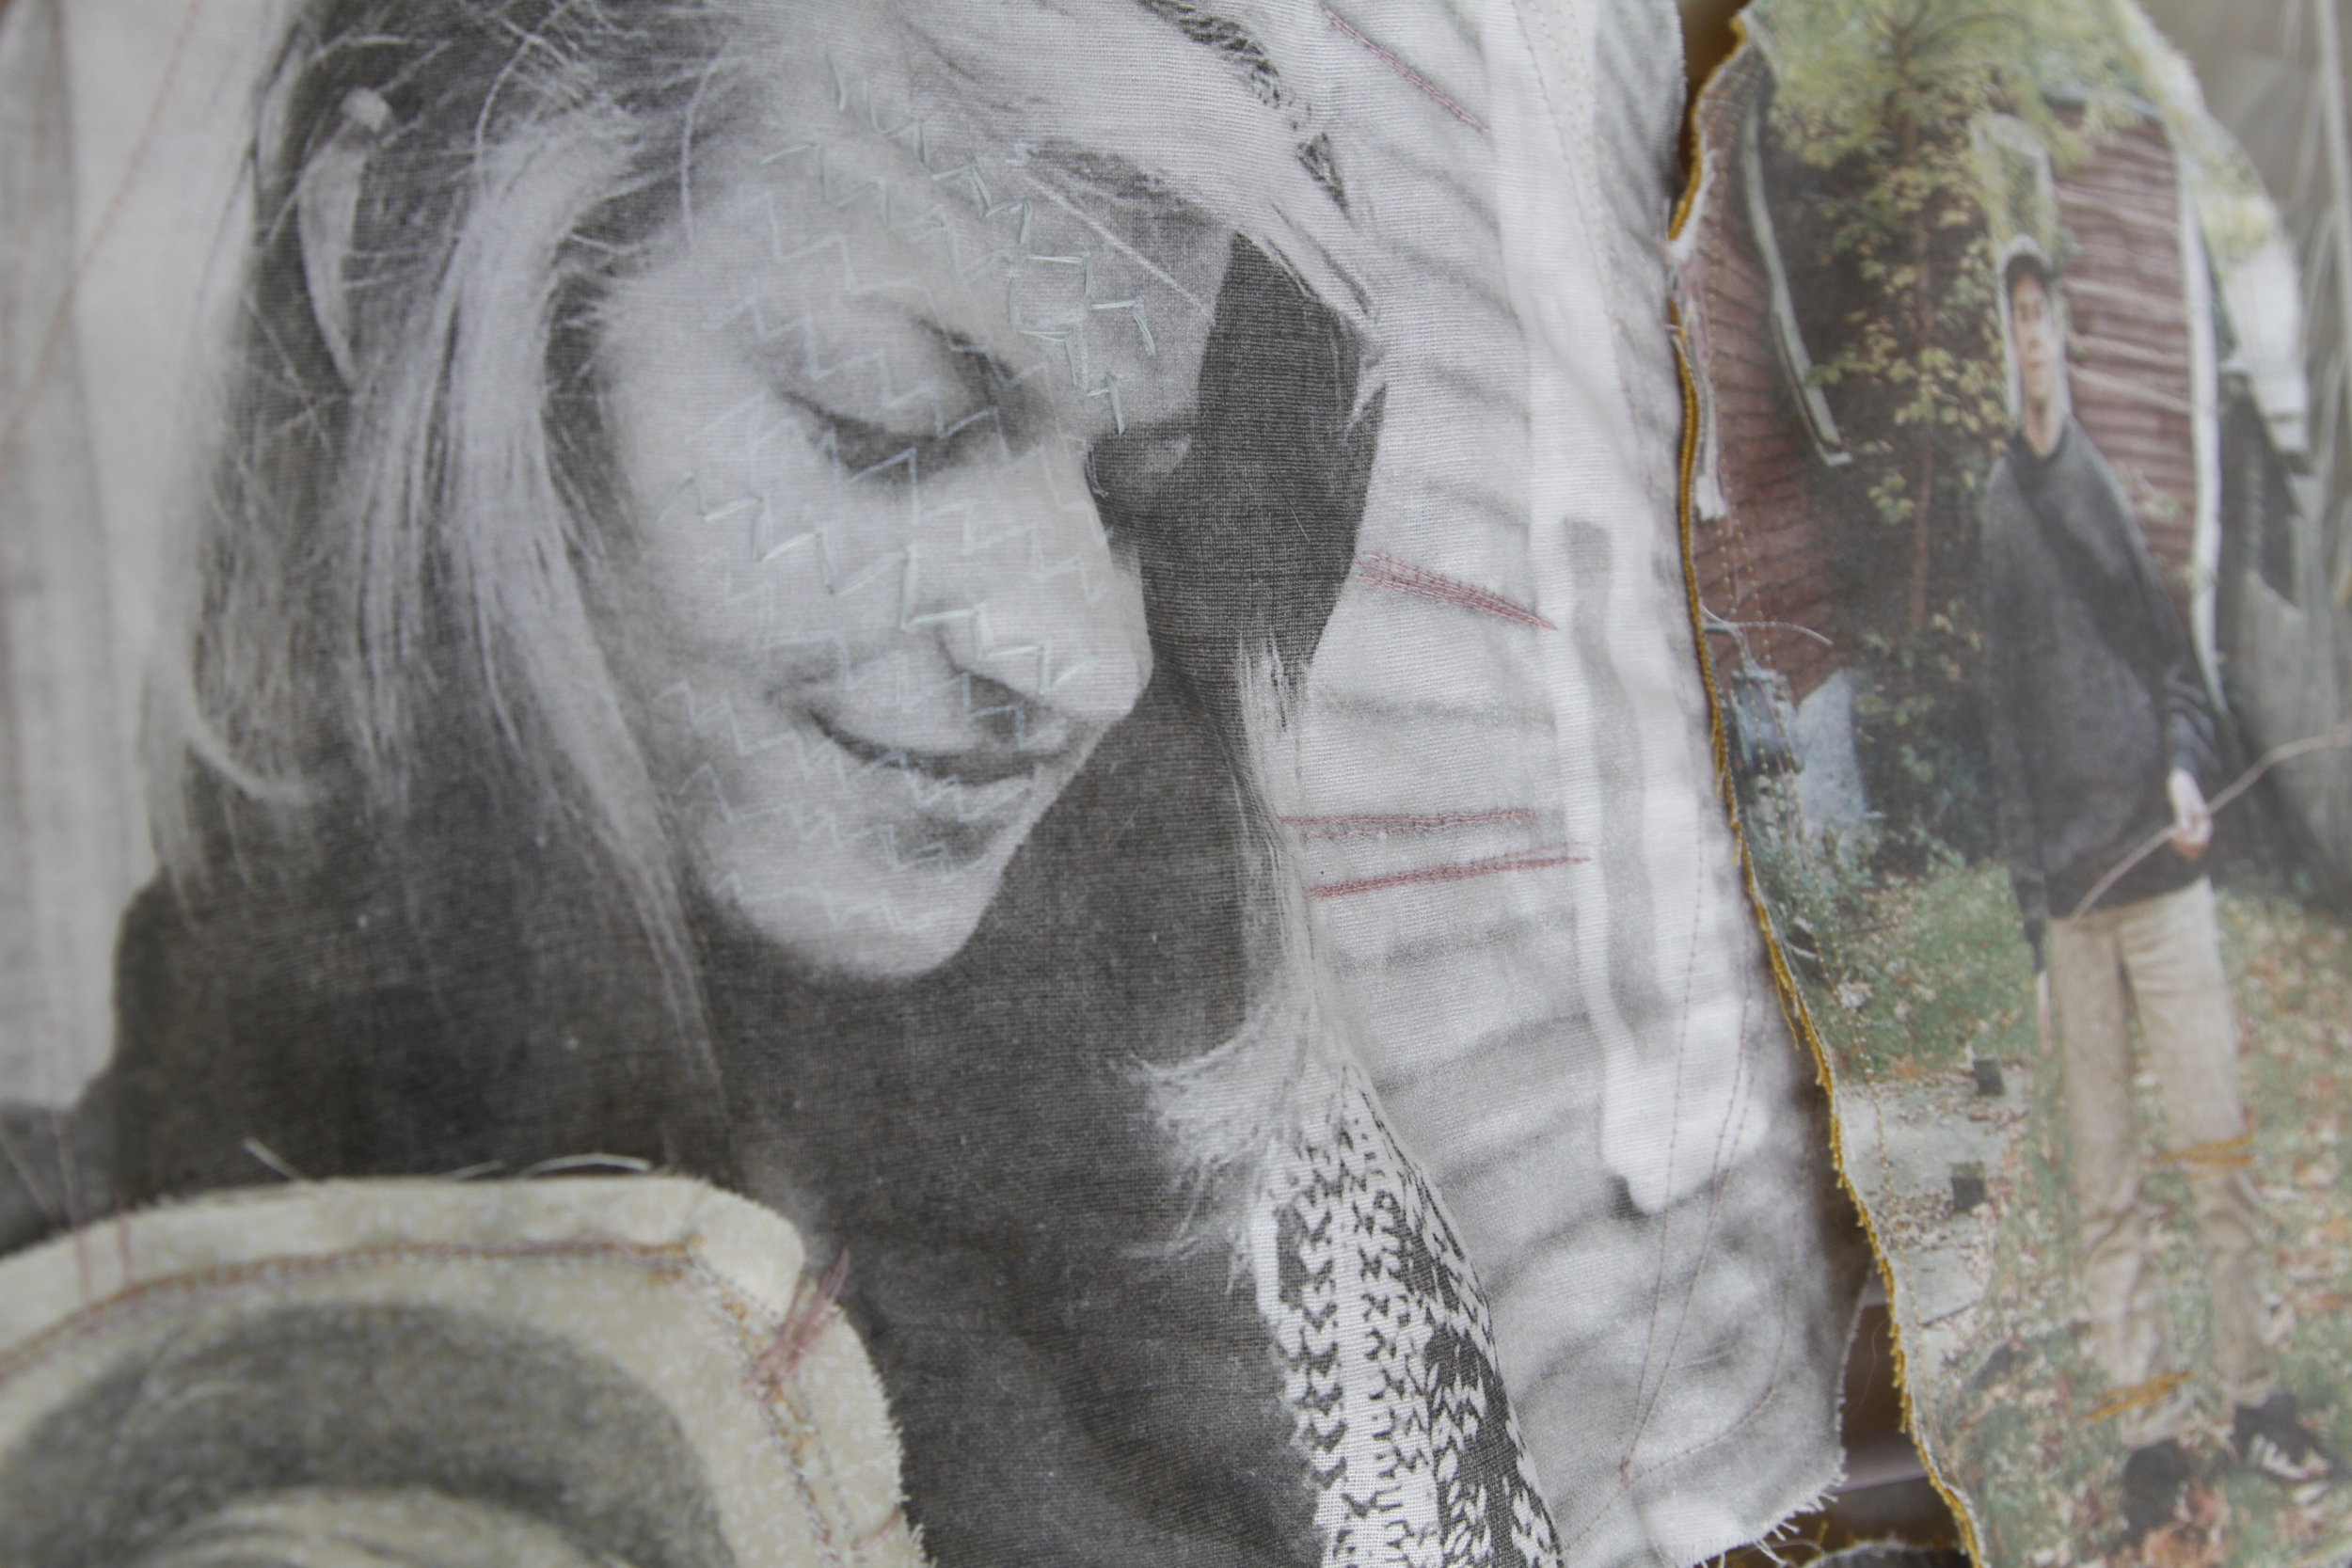 fabric tapestry image transfers onto fabric with silkscreen and embroidered details